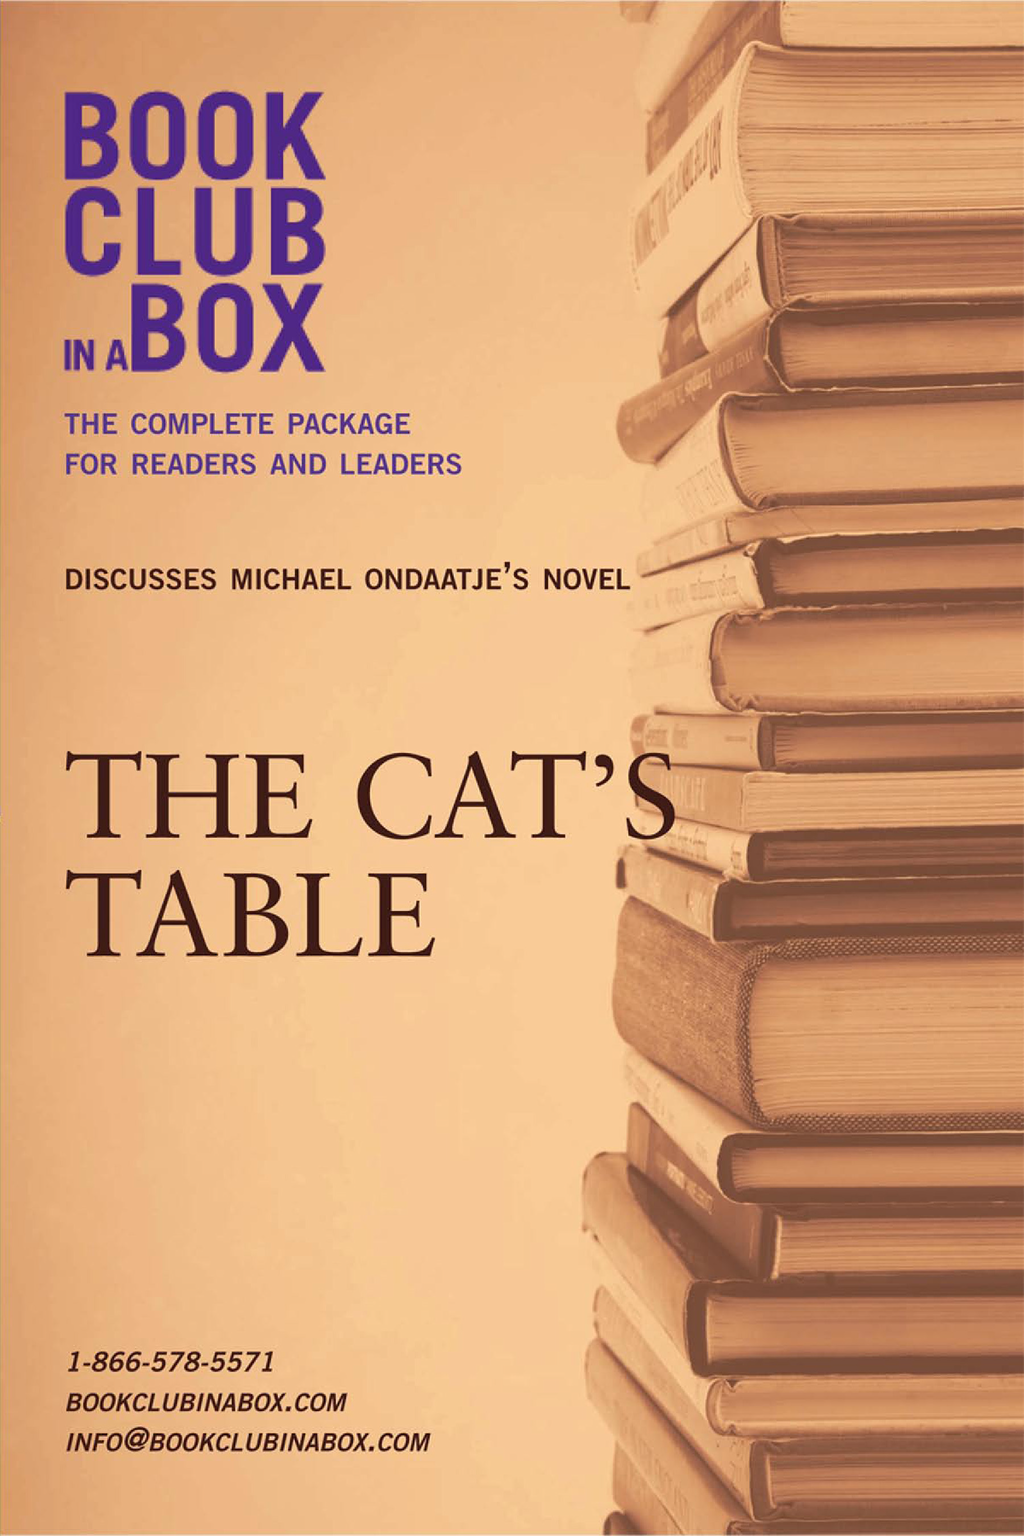 Bookclub-in-a-Box Discusses The Cat's Table, by Michael Ondaatje By: Jo-Ann Zoon,Marilyn Herbert